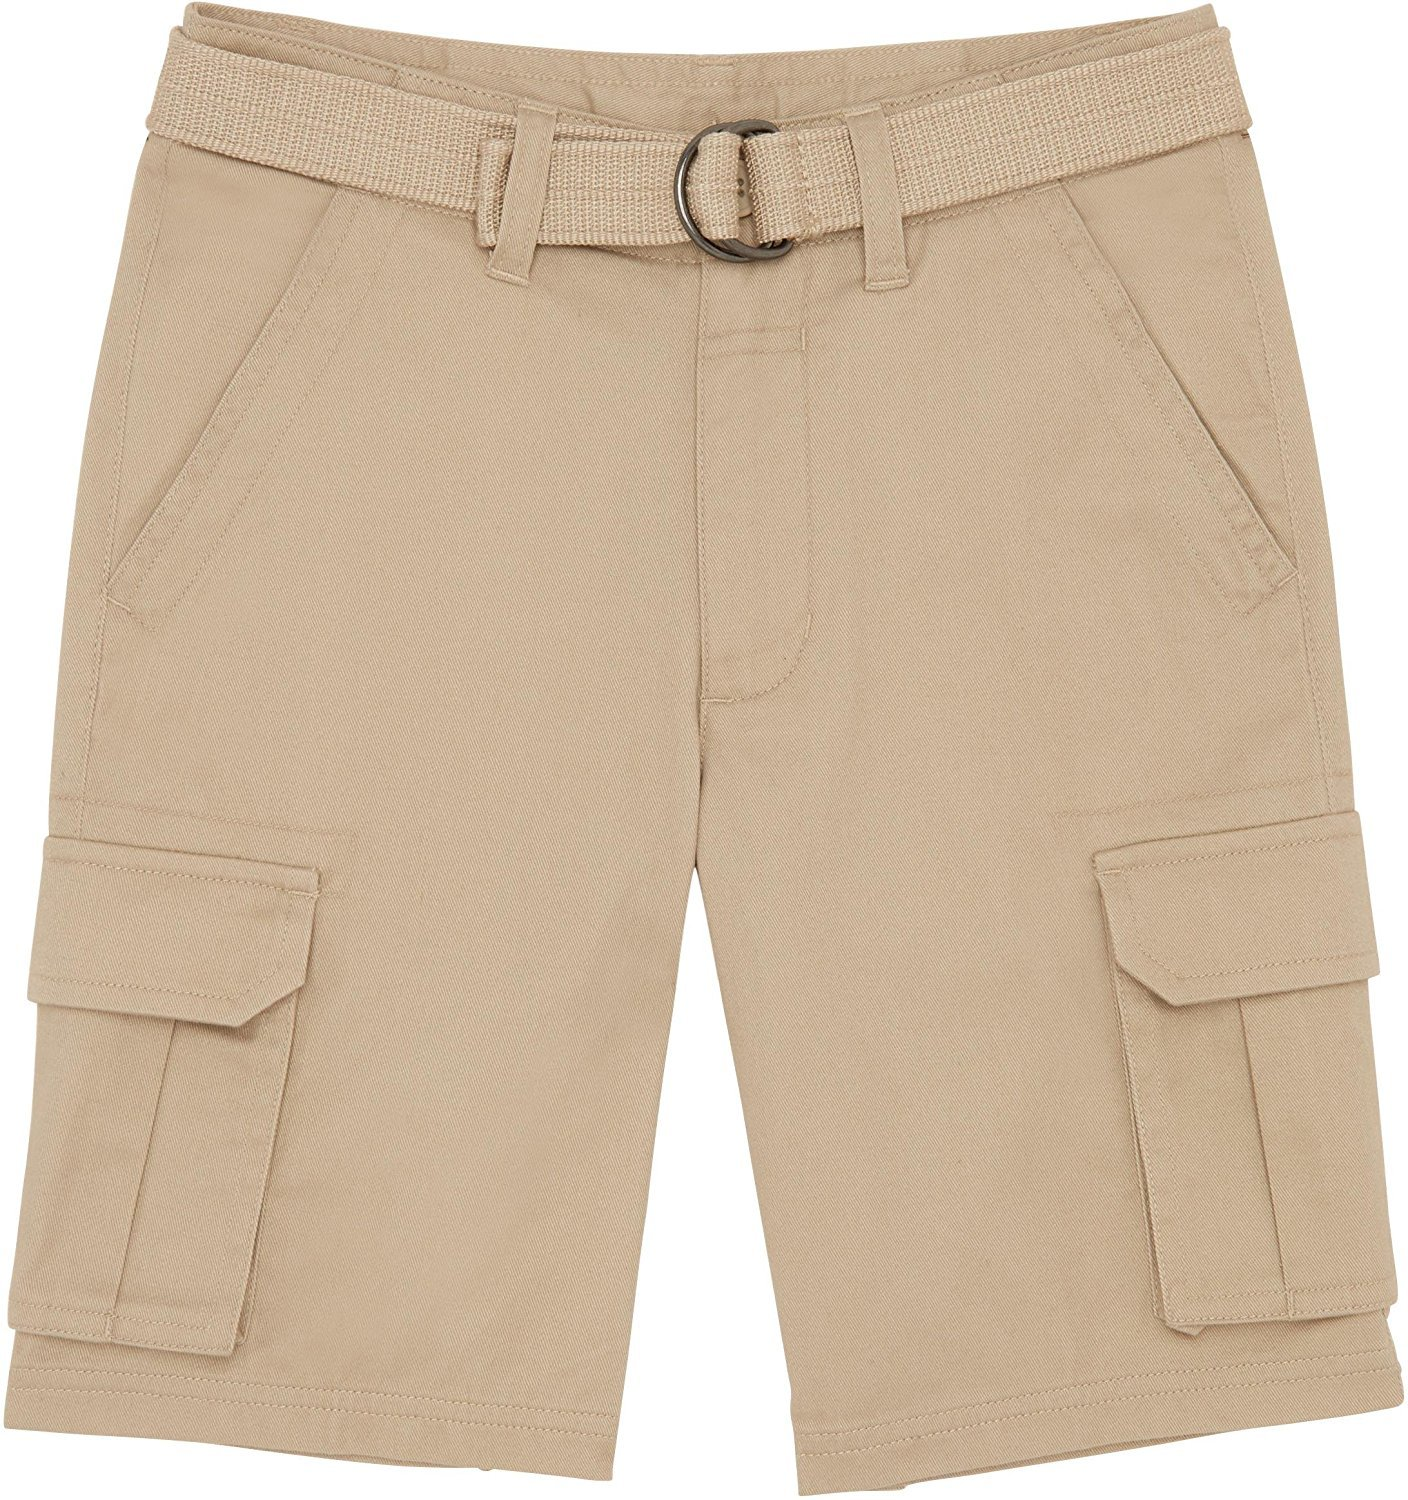 French Toast School Uniform Boys Belted Cargo Shorts, Khaki, 7 by French Toast (Image #1)